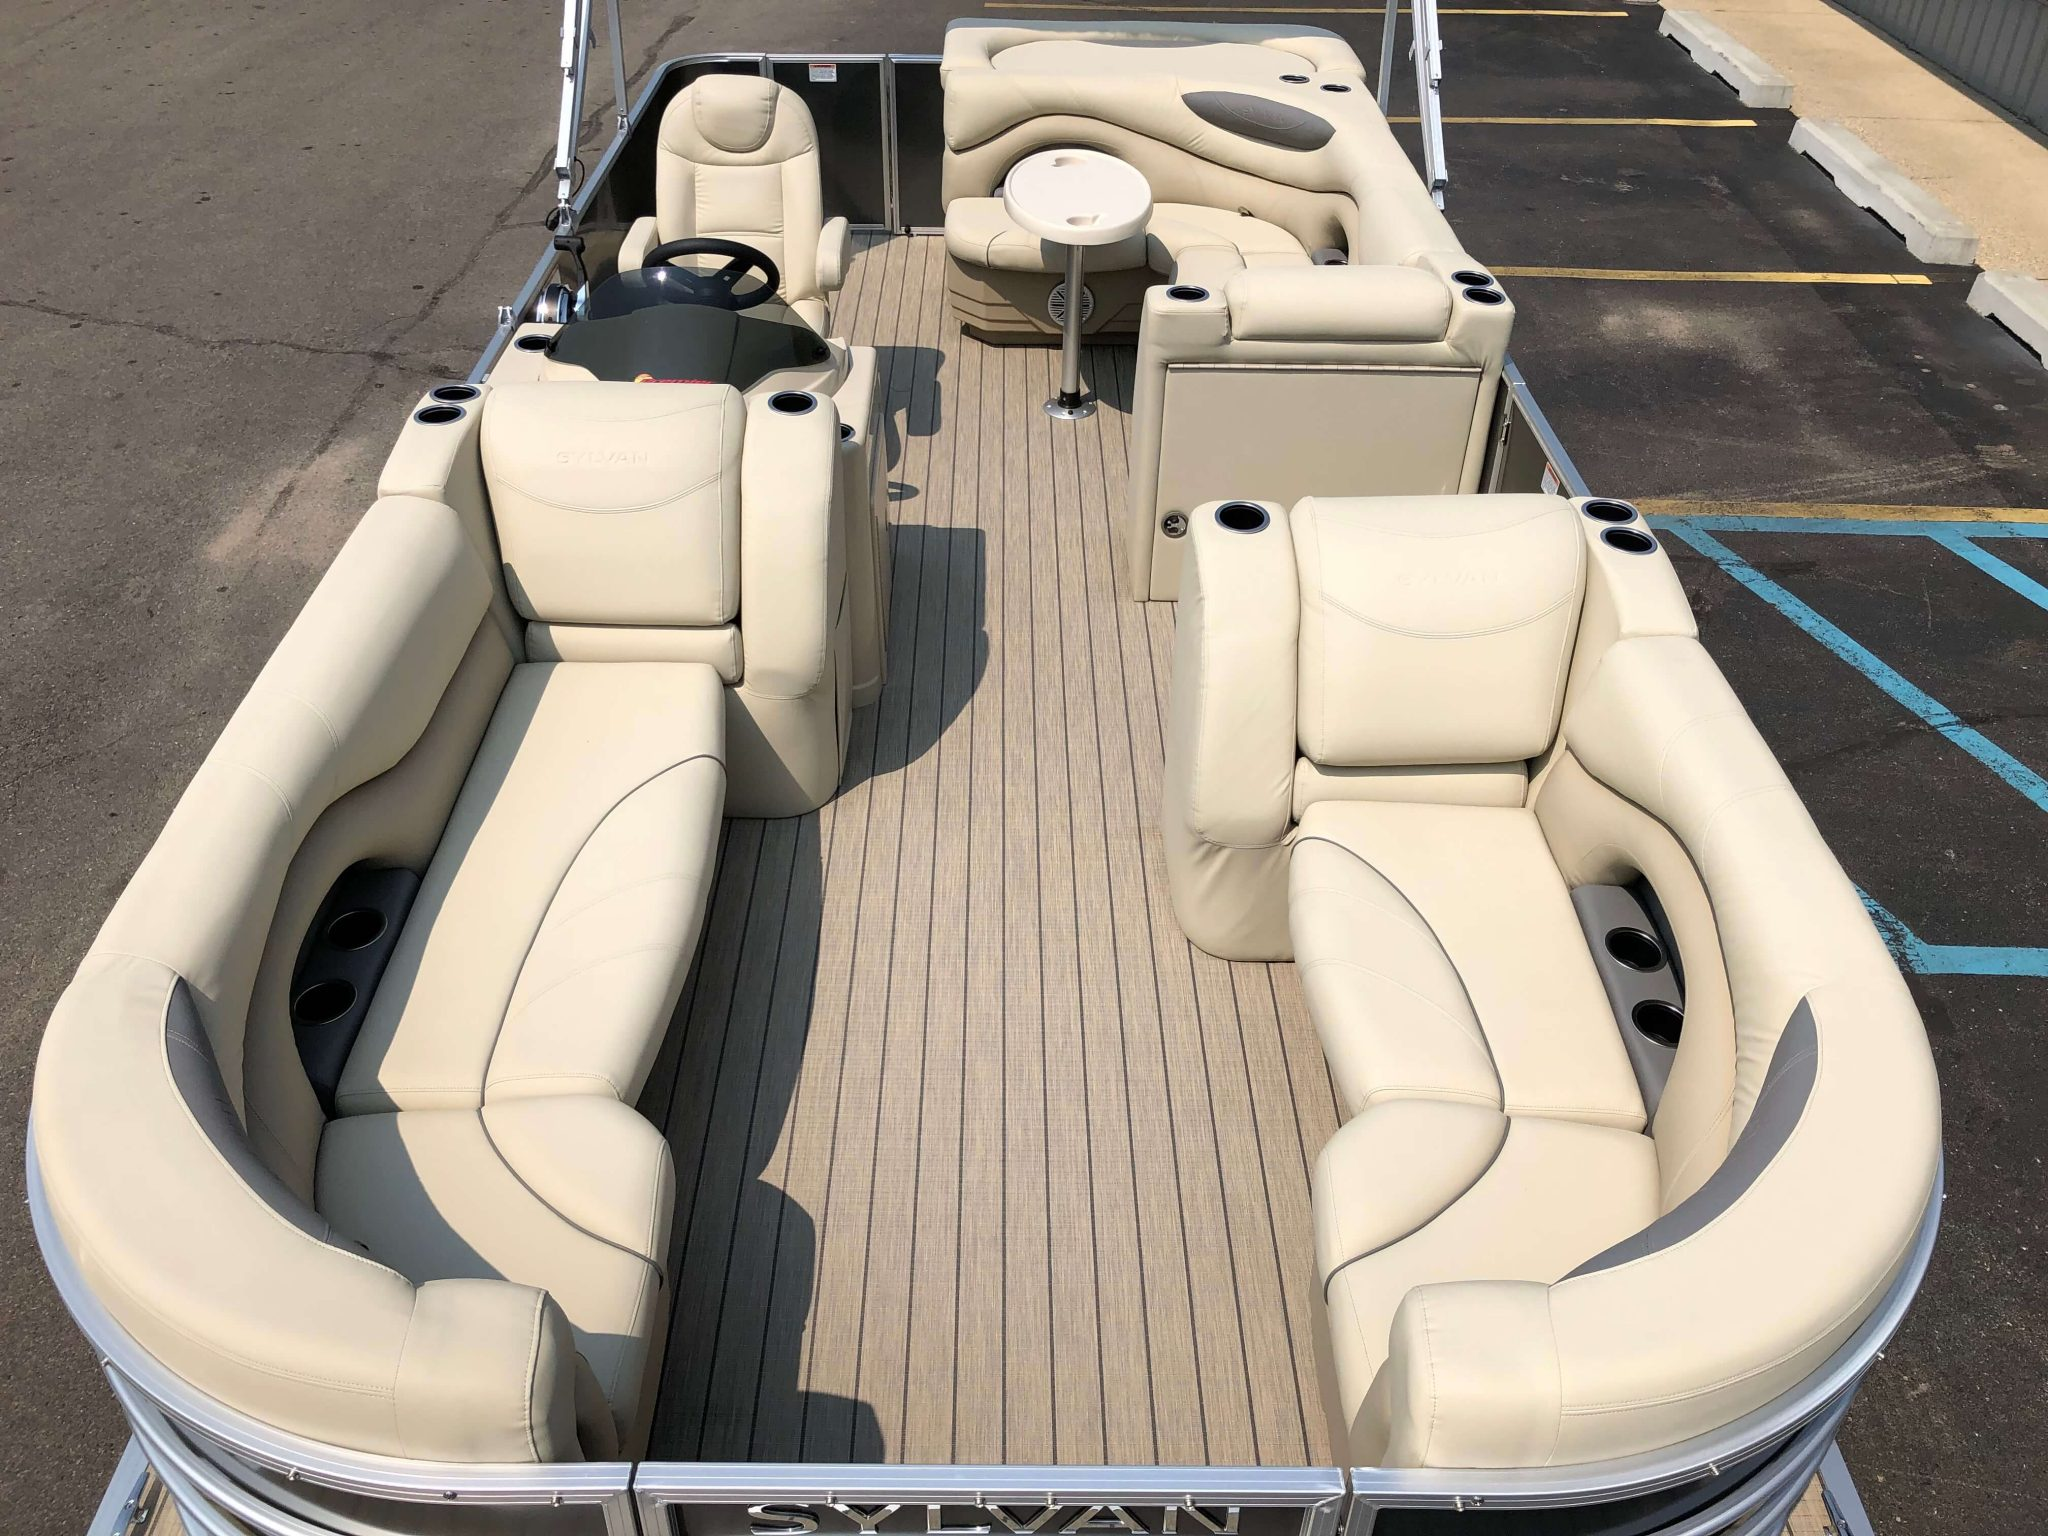 2019 Sylvan 8522 Cruise Carbon Pontoon Boat Layout 1